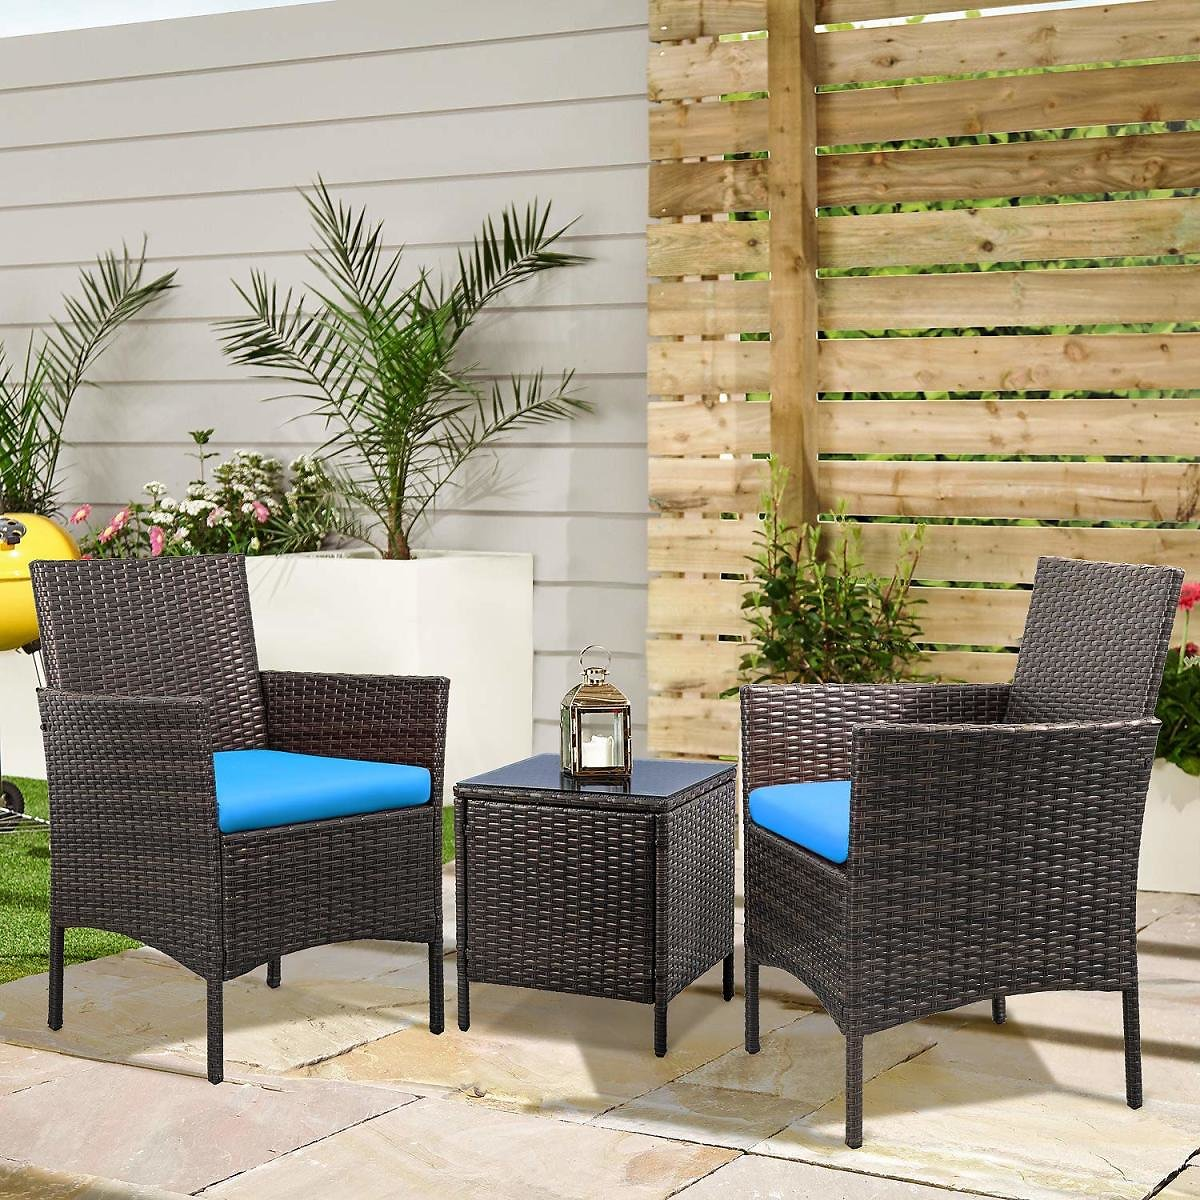 Walnew 3 PCS Outdoor Patio Furniture PE Rattan Wicker Table and Chairs Set Bar Set with Cushioned Tempered Glass (Brown/Blue)